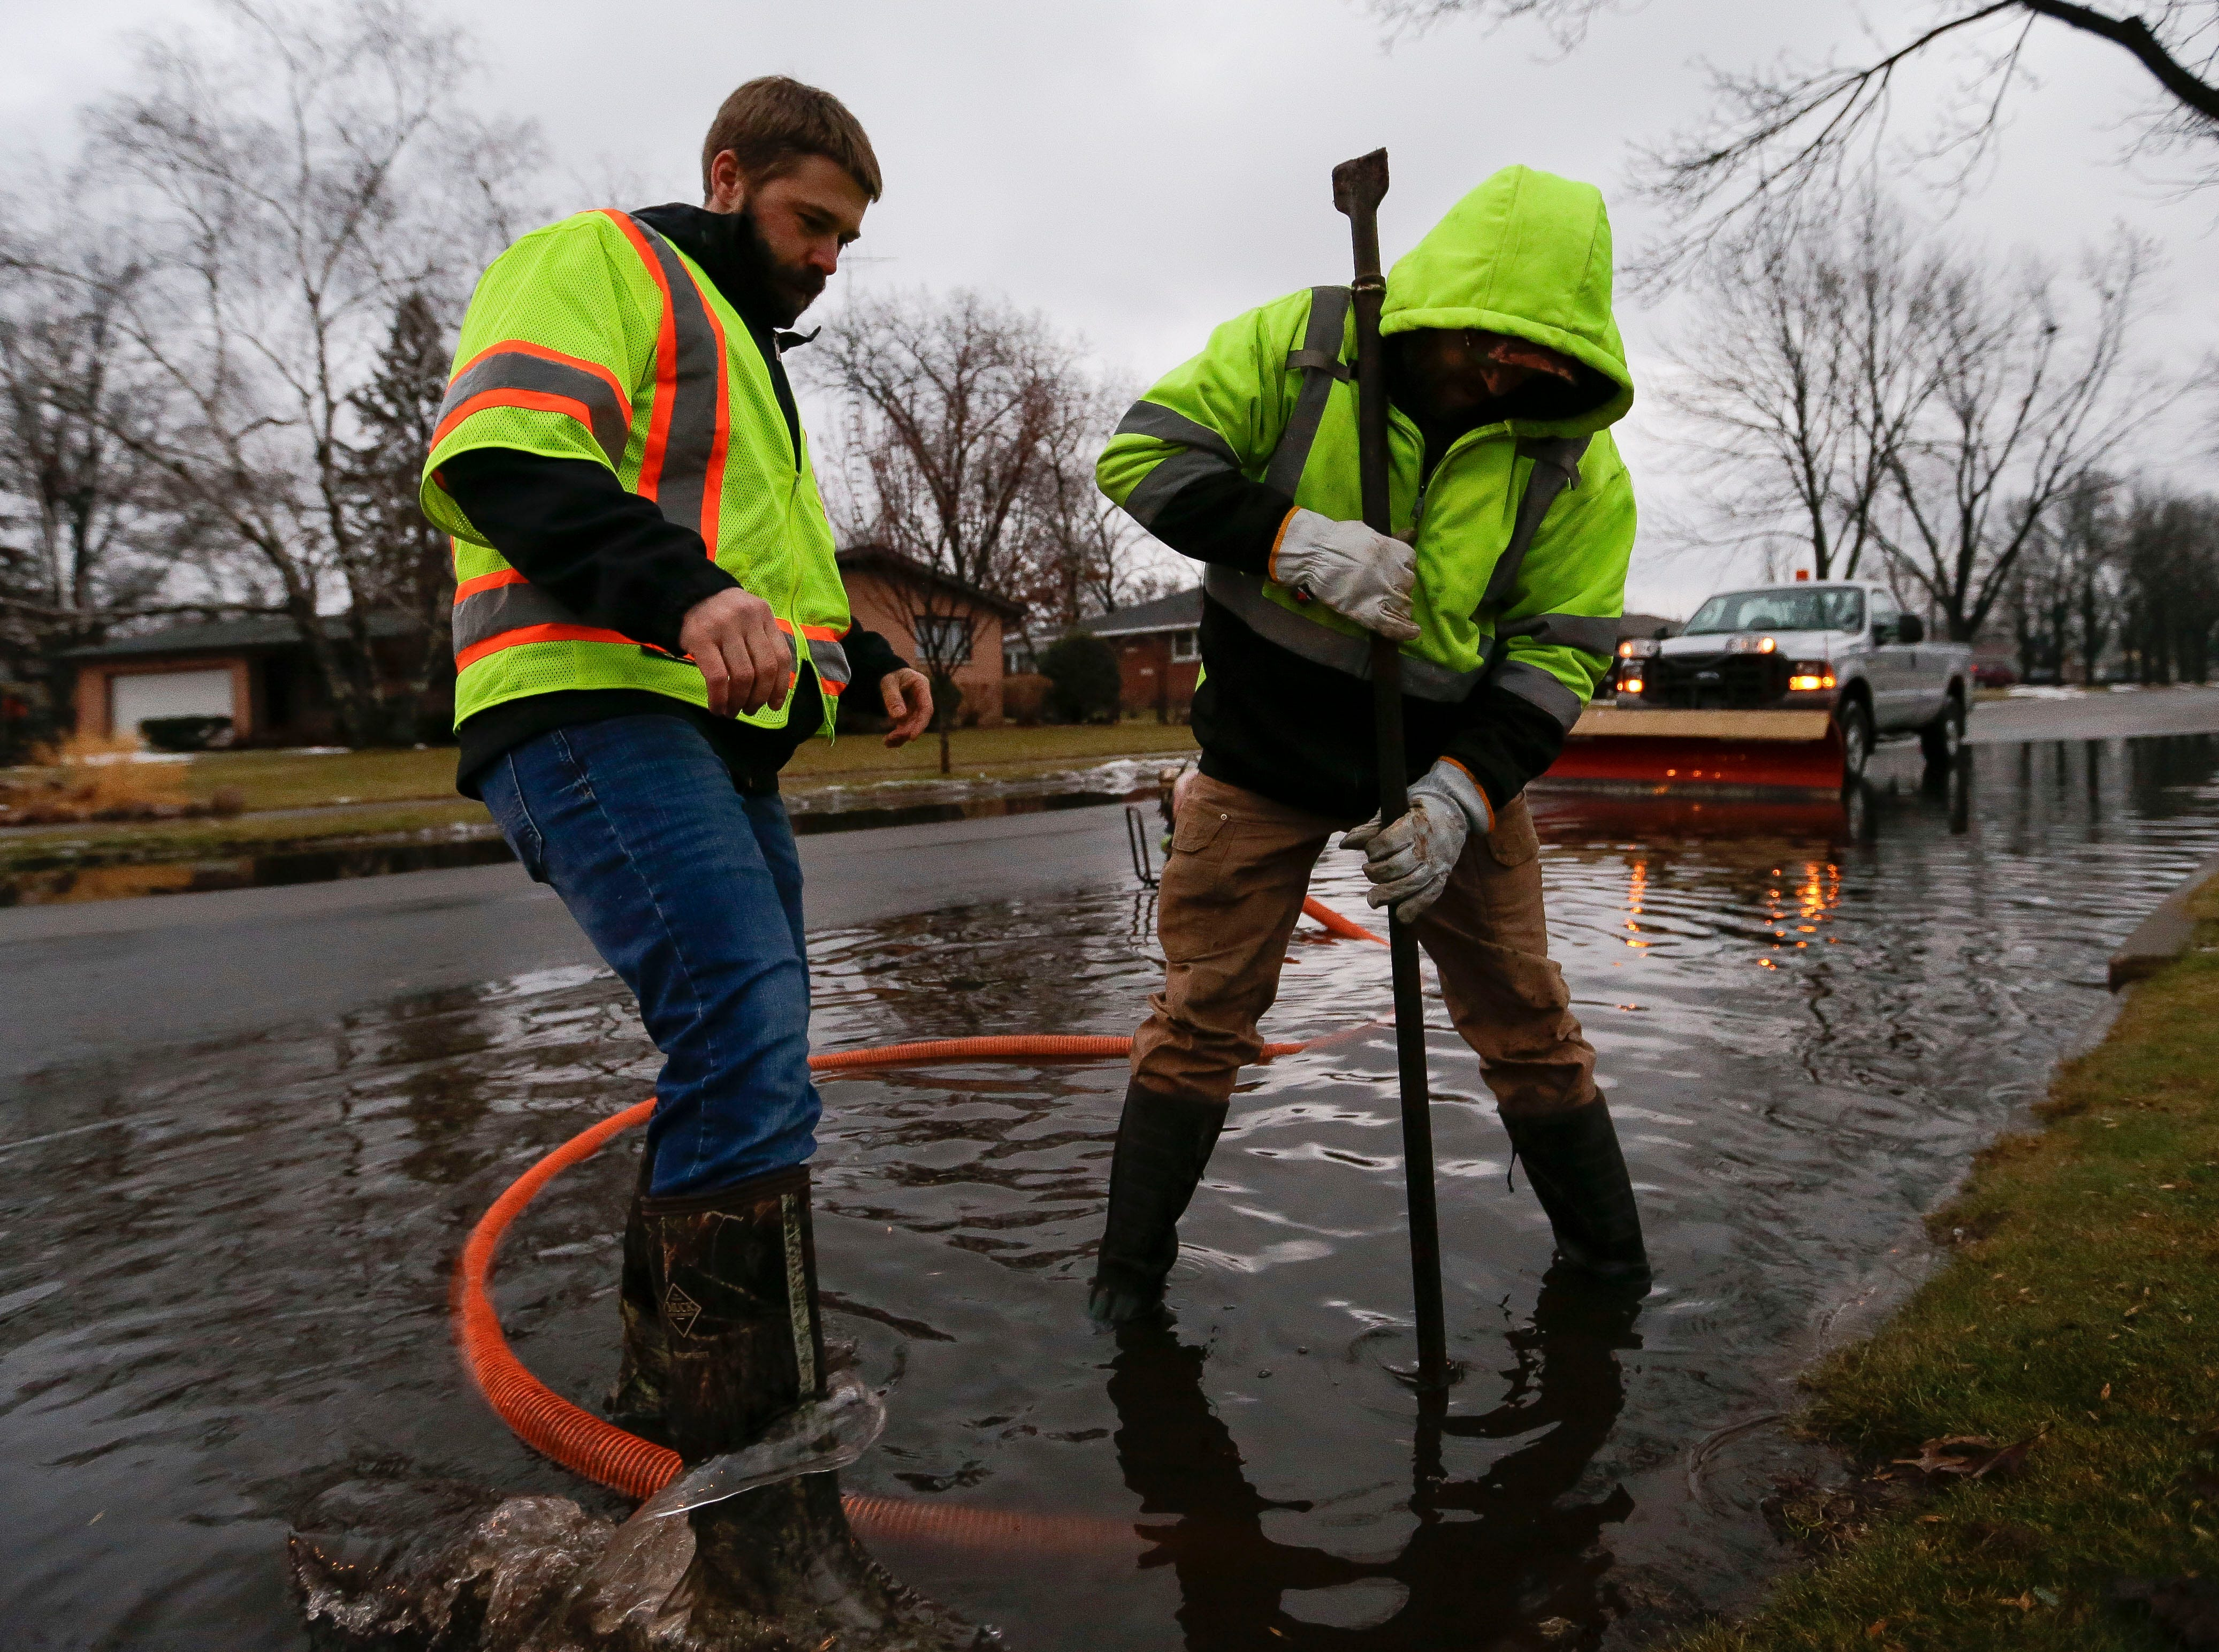 Stevens Point utilities workers Eric Southworth and Dan Woitczak remove a drain grate on Monday, January 7, 2019, at the intersection of Jordan Lane and Indiana Avenue in Stevens Point, Wis.Tork Mason/USA TODAY NETWORK-Wisconsin